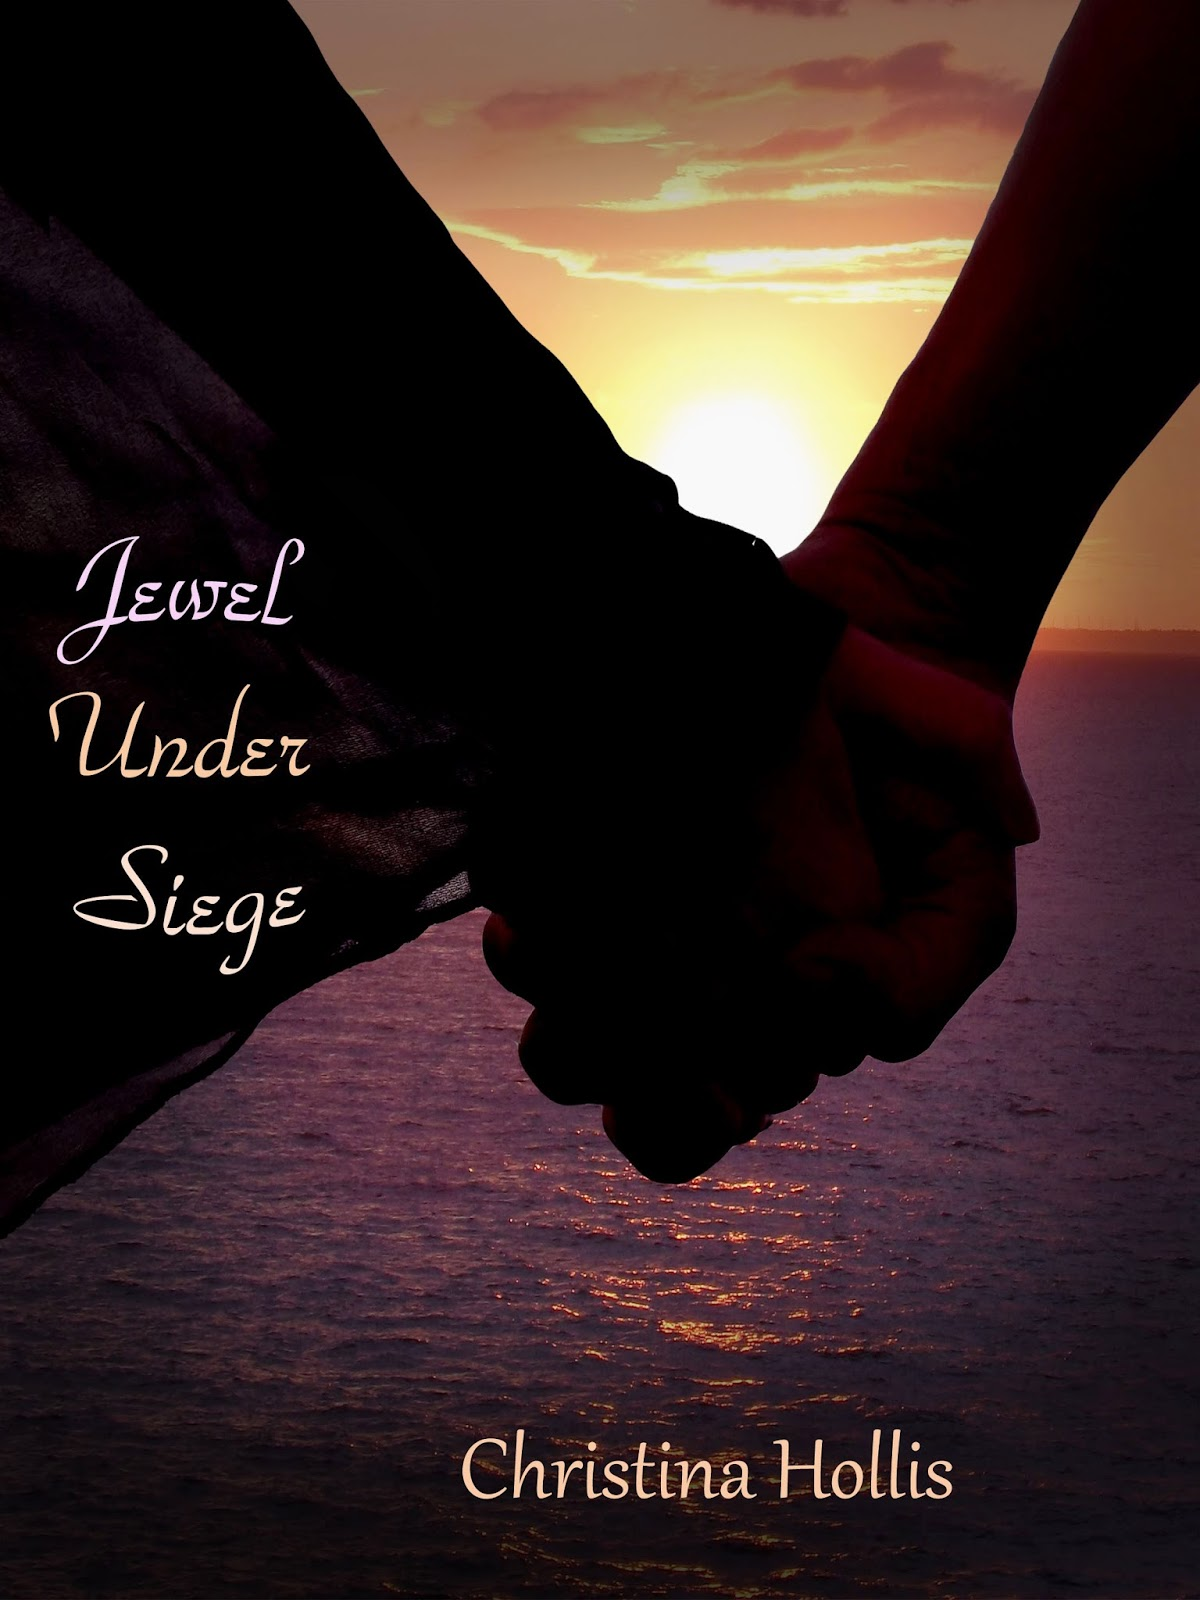 http://www.amazon.co.uk/Jewel-Under-Siege-Christina-Hollis-ebook/dp/B00IJZLM6O/ref=sr_1_1?ie=UTF8&qid=1396339351&sr=8-1&keywords=Jewel+Under+Siege